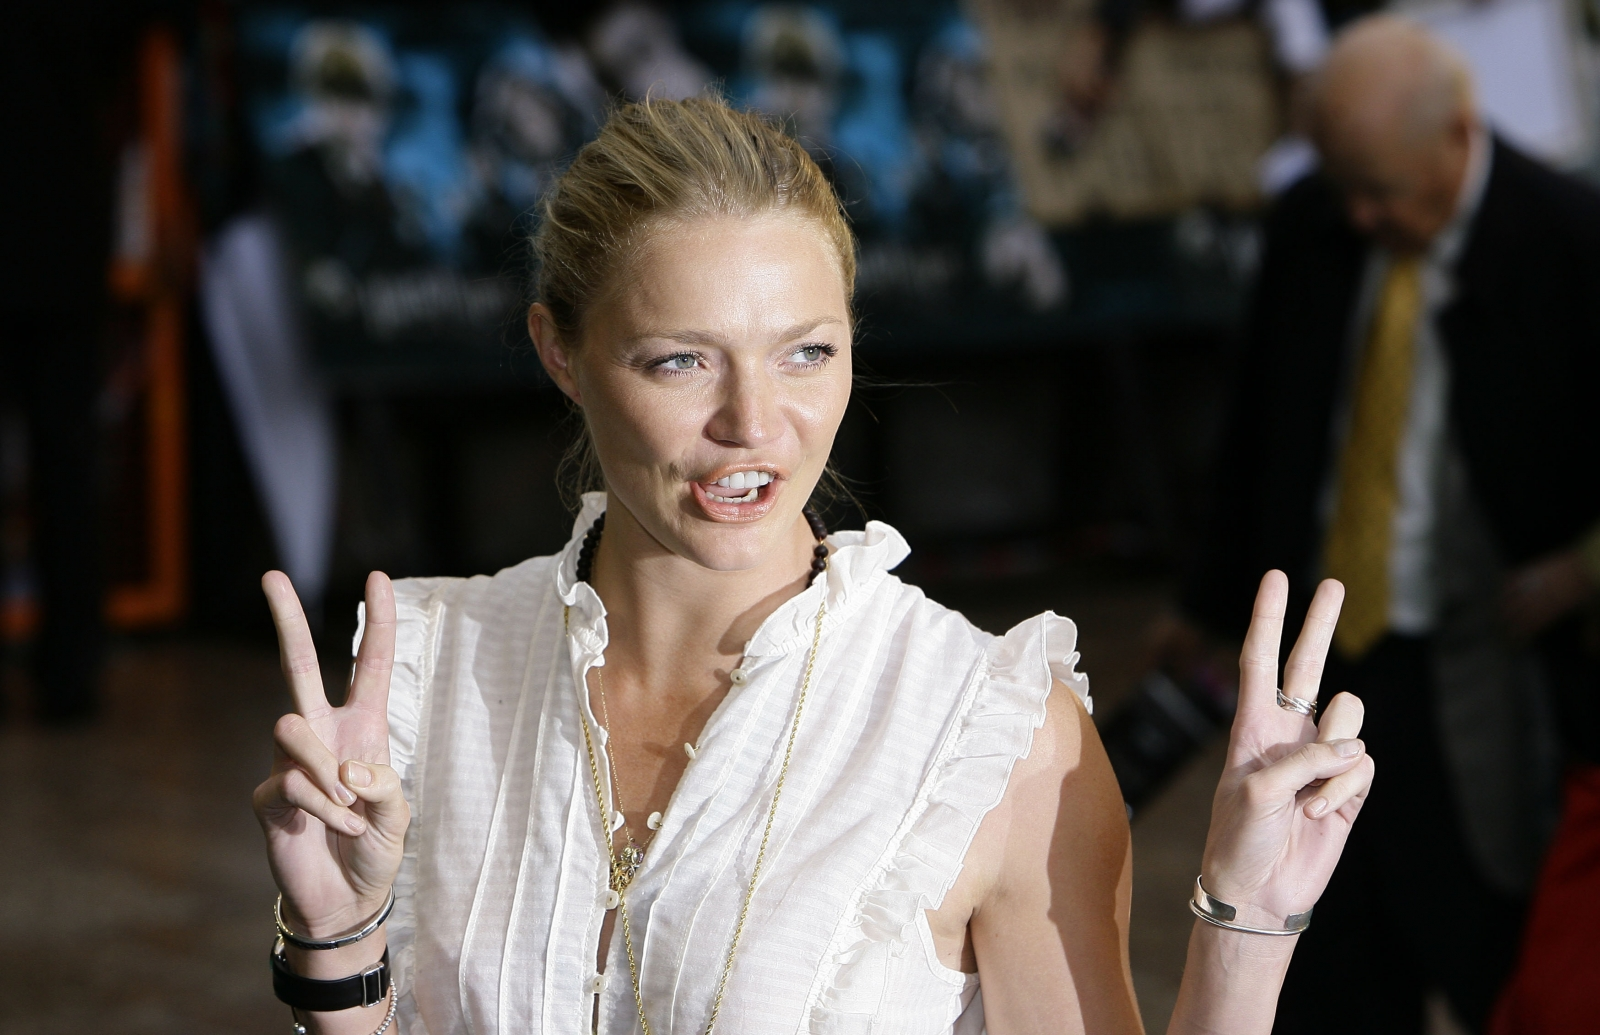 Jodie Kidd for Top Gear?